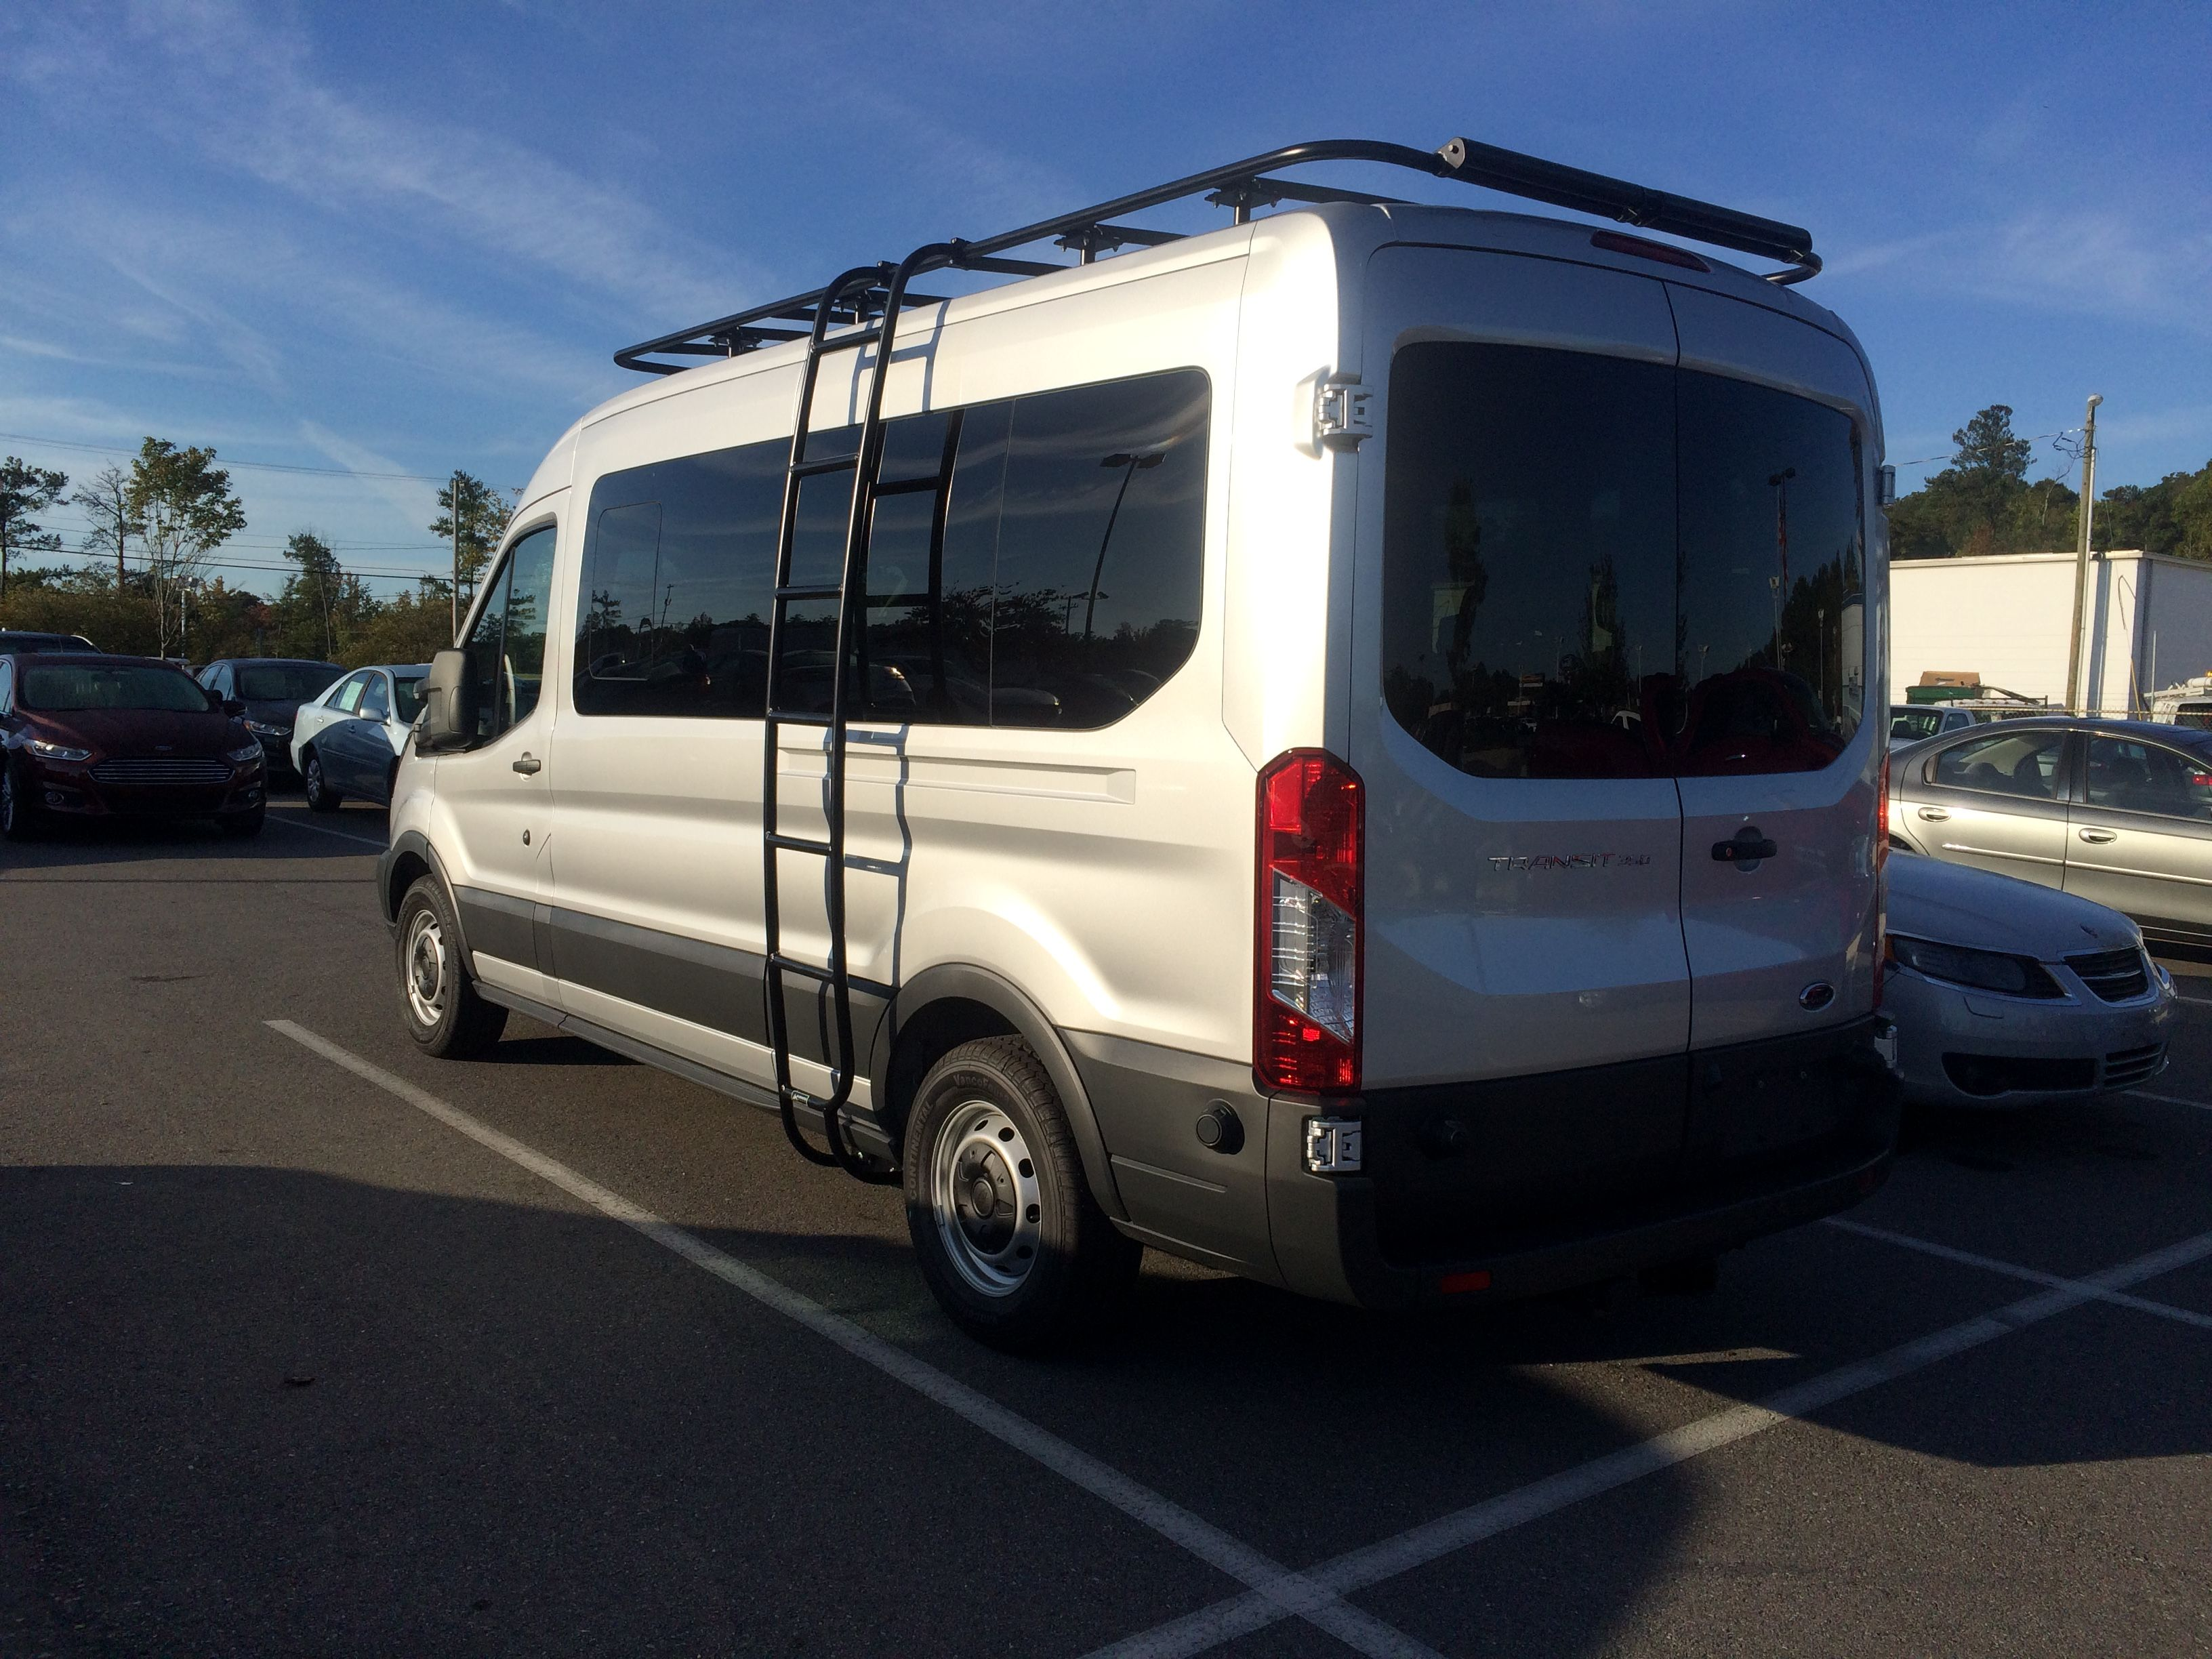 Customer pic from tindol ford aluminess roof rack and ladder installed on a new ford transit